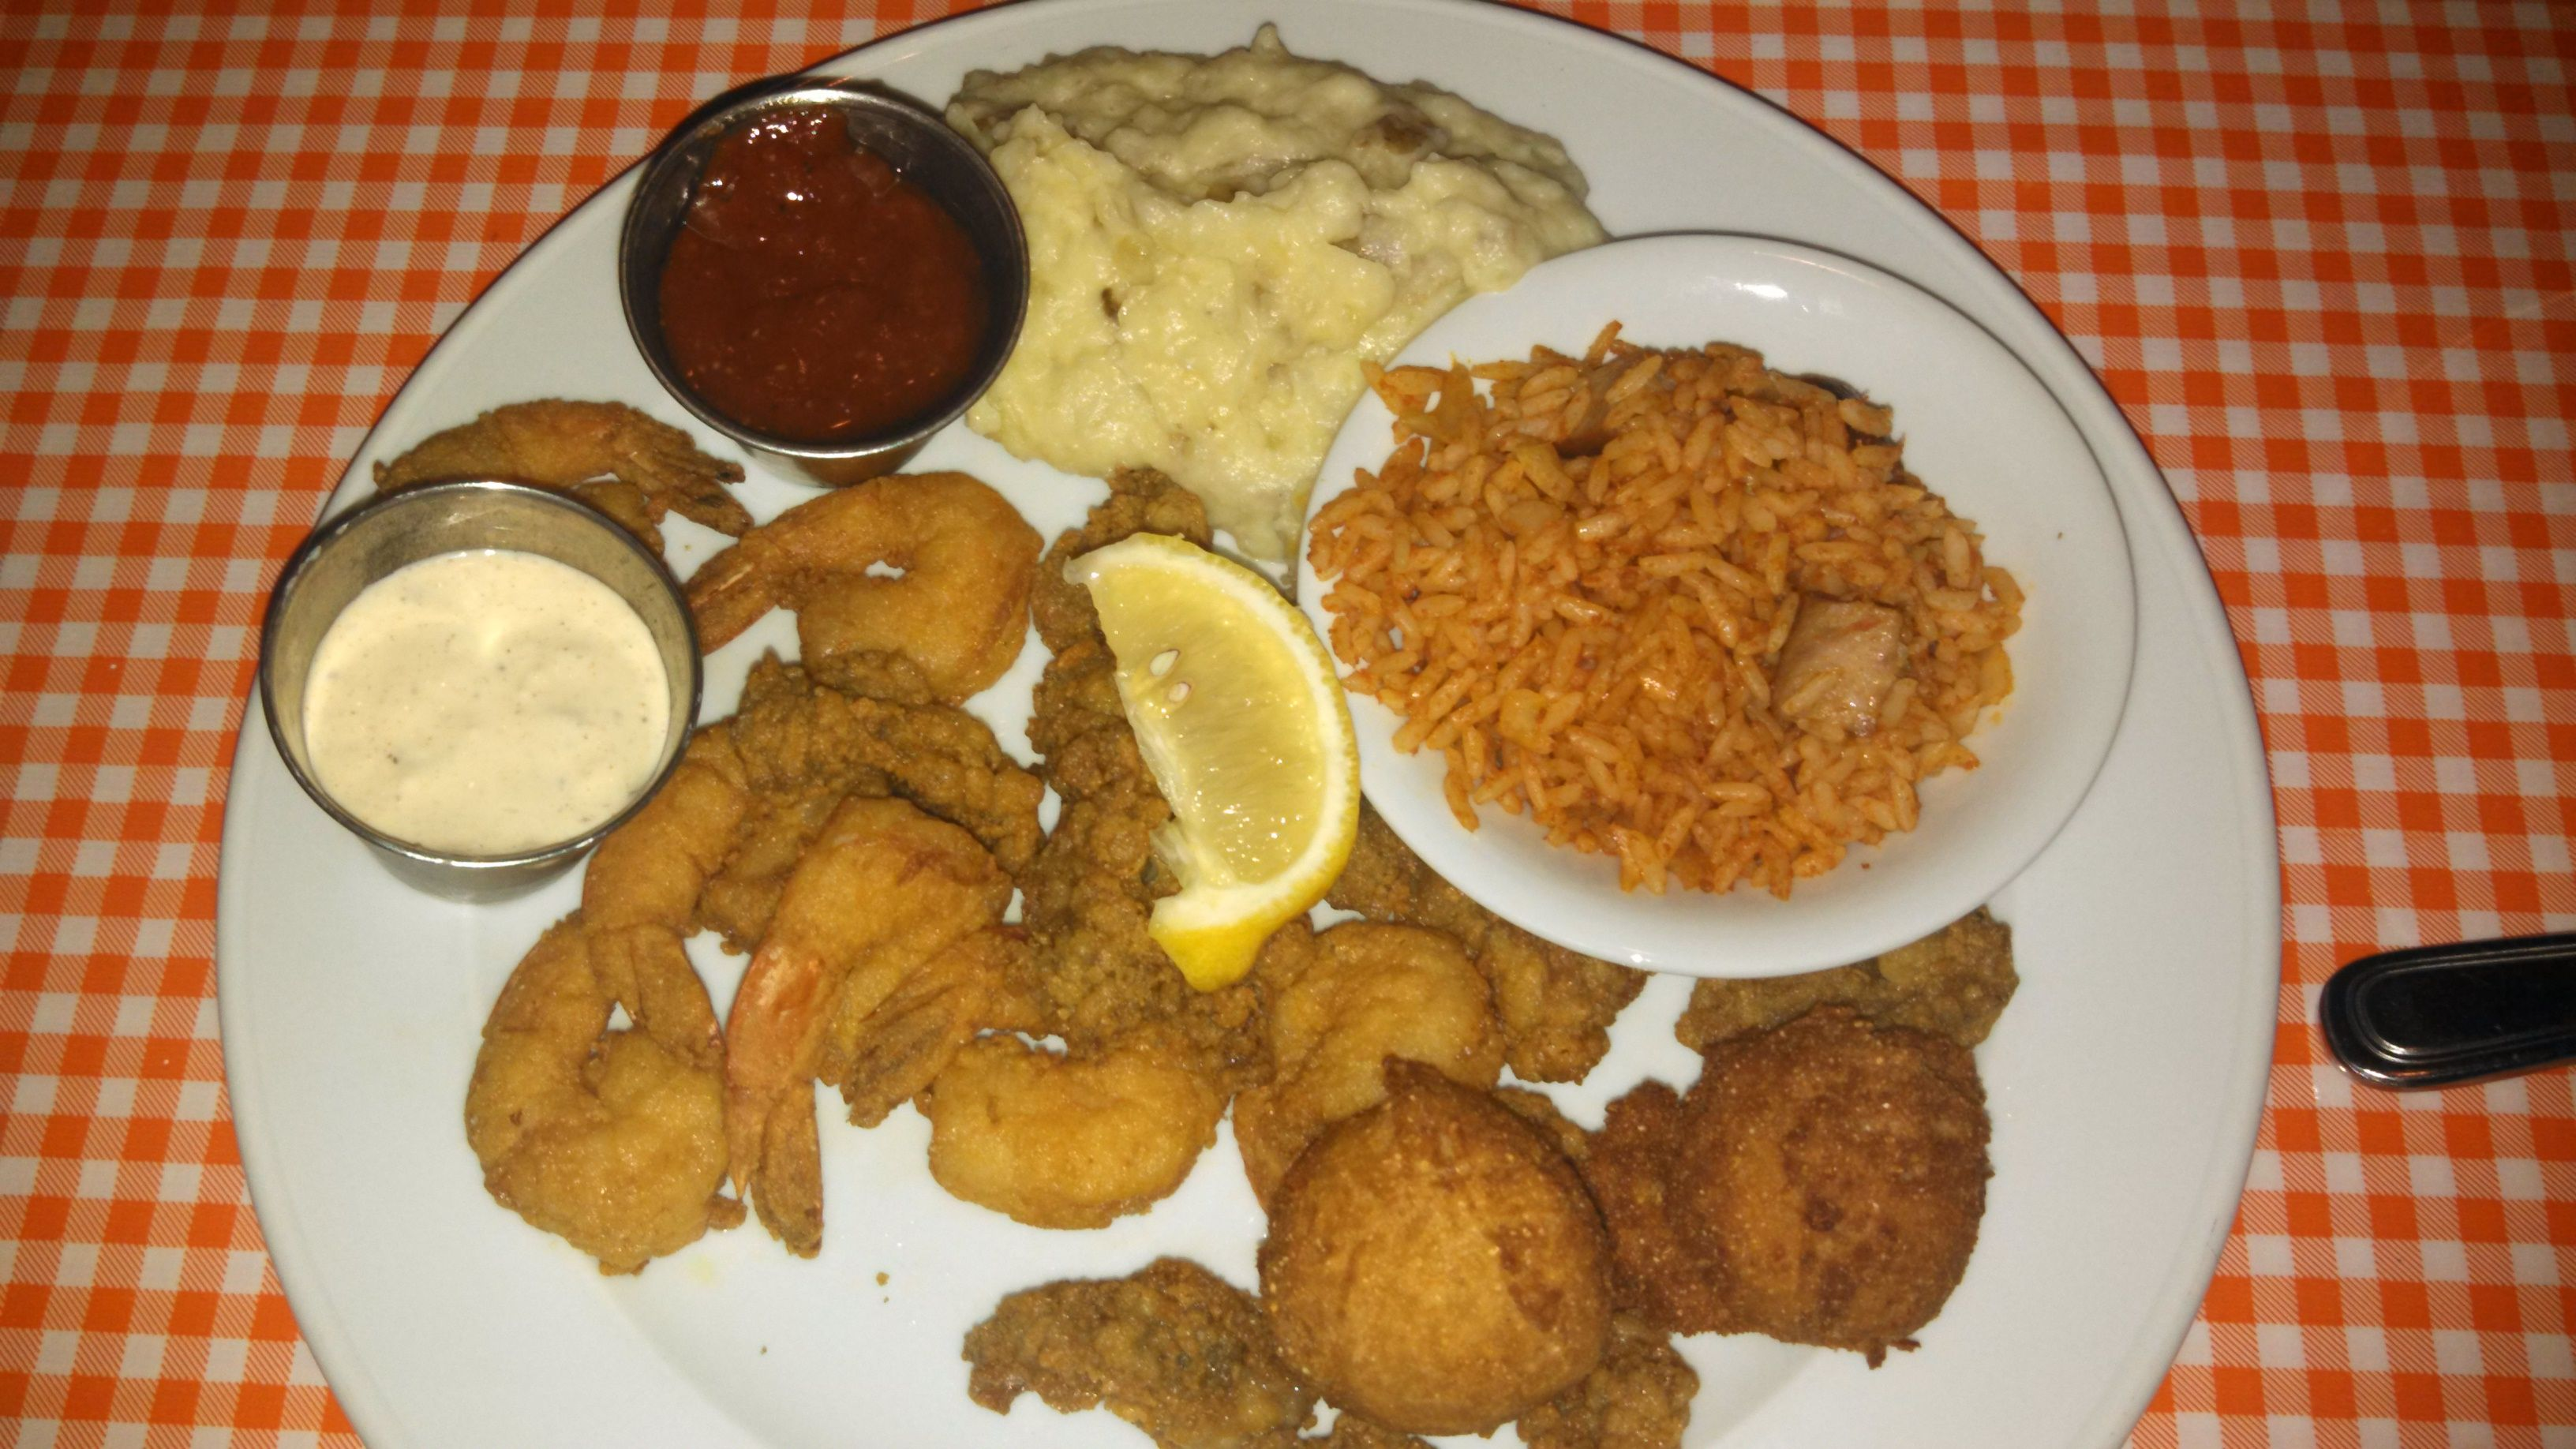 Fleet landing is a great place for seafood in charleston